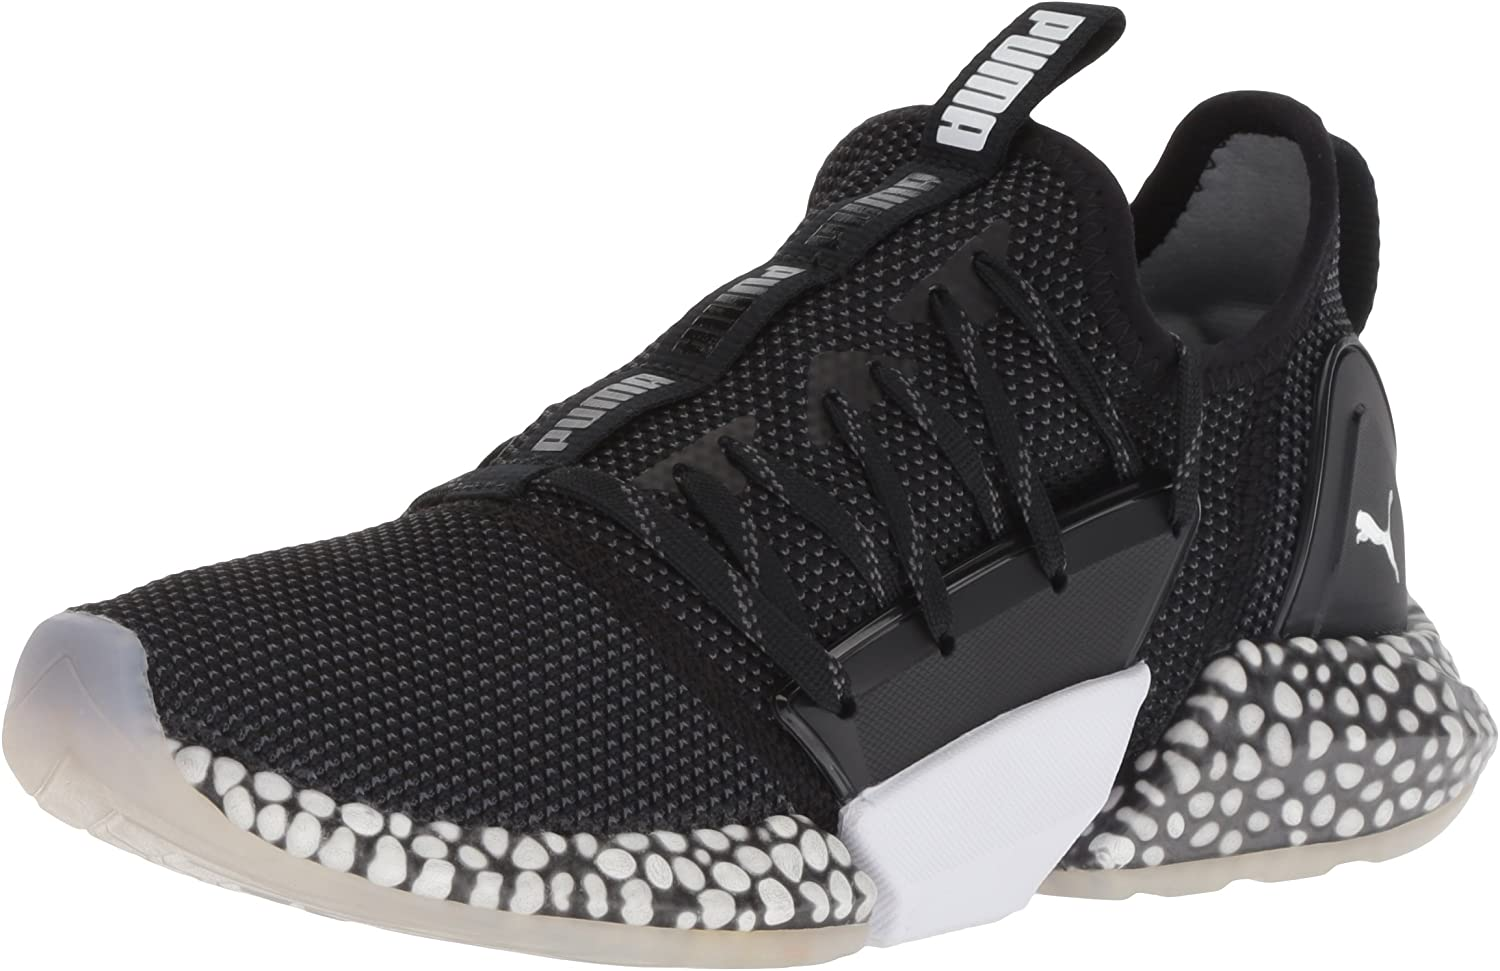 PUMA Womens Hybrid Rocket Runner